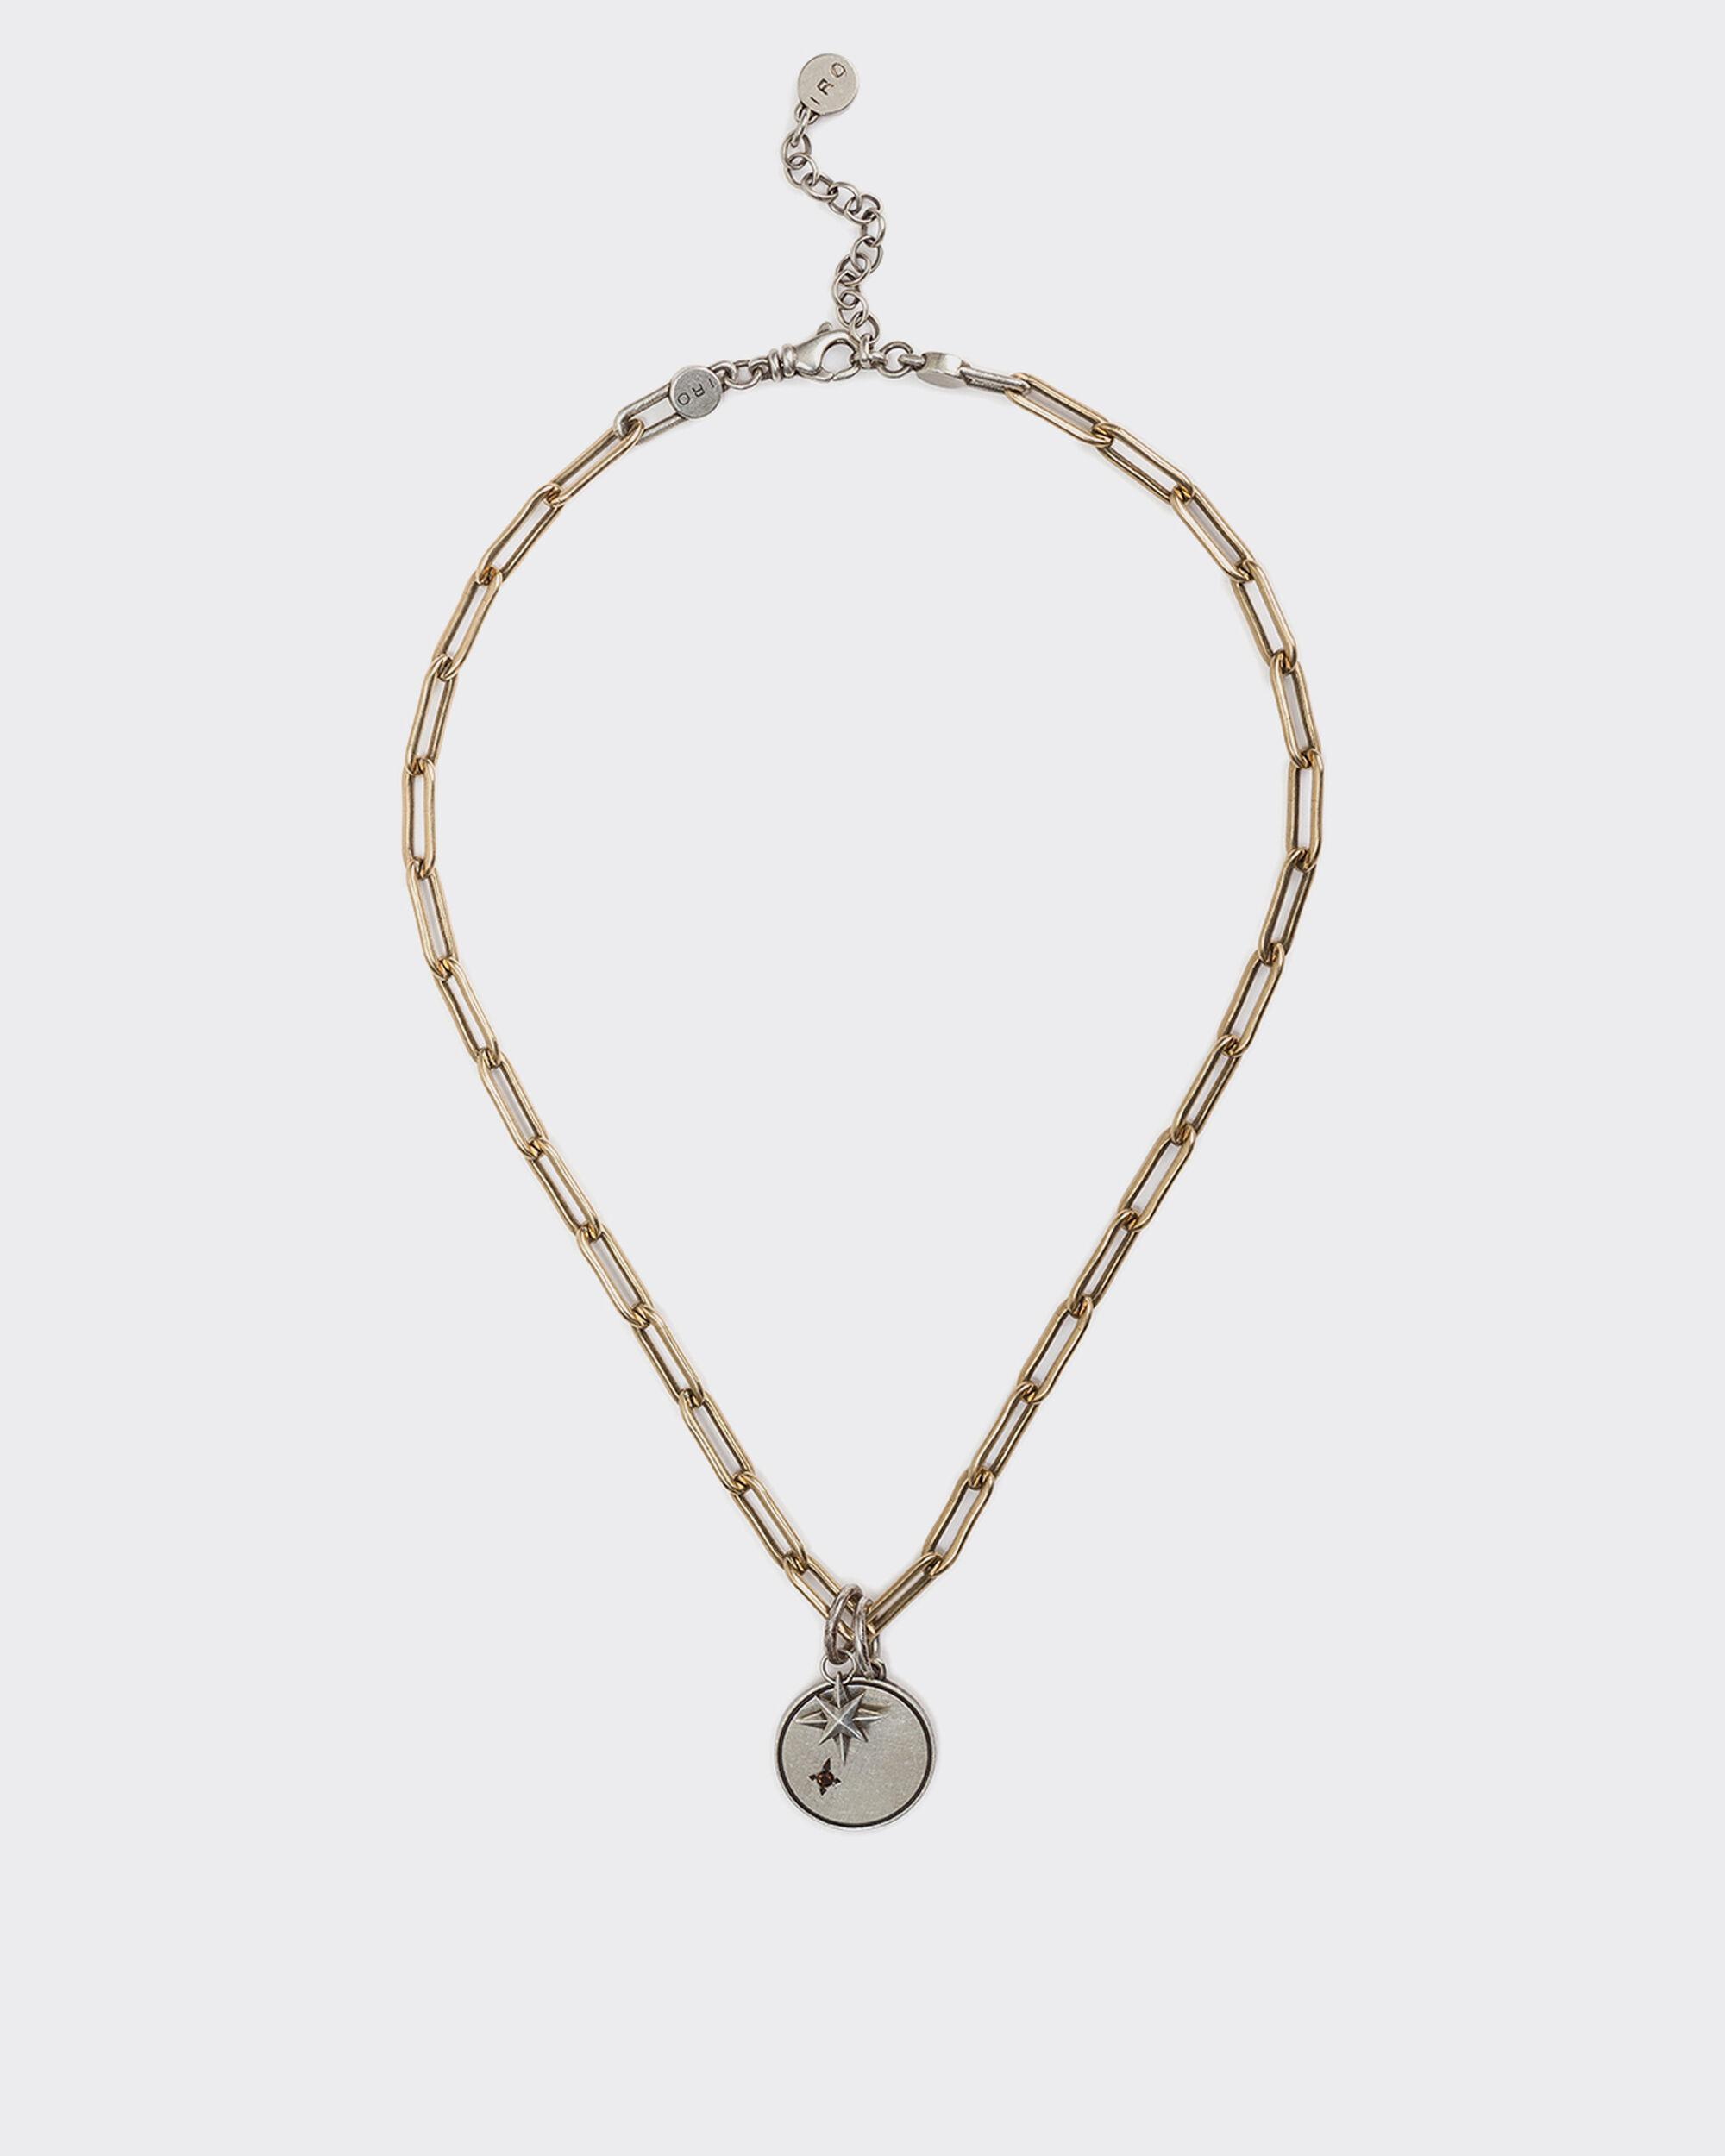 MOLYB SILVER CHAIN NECKLACE